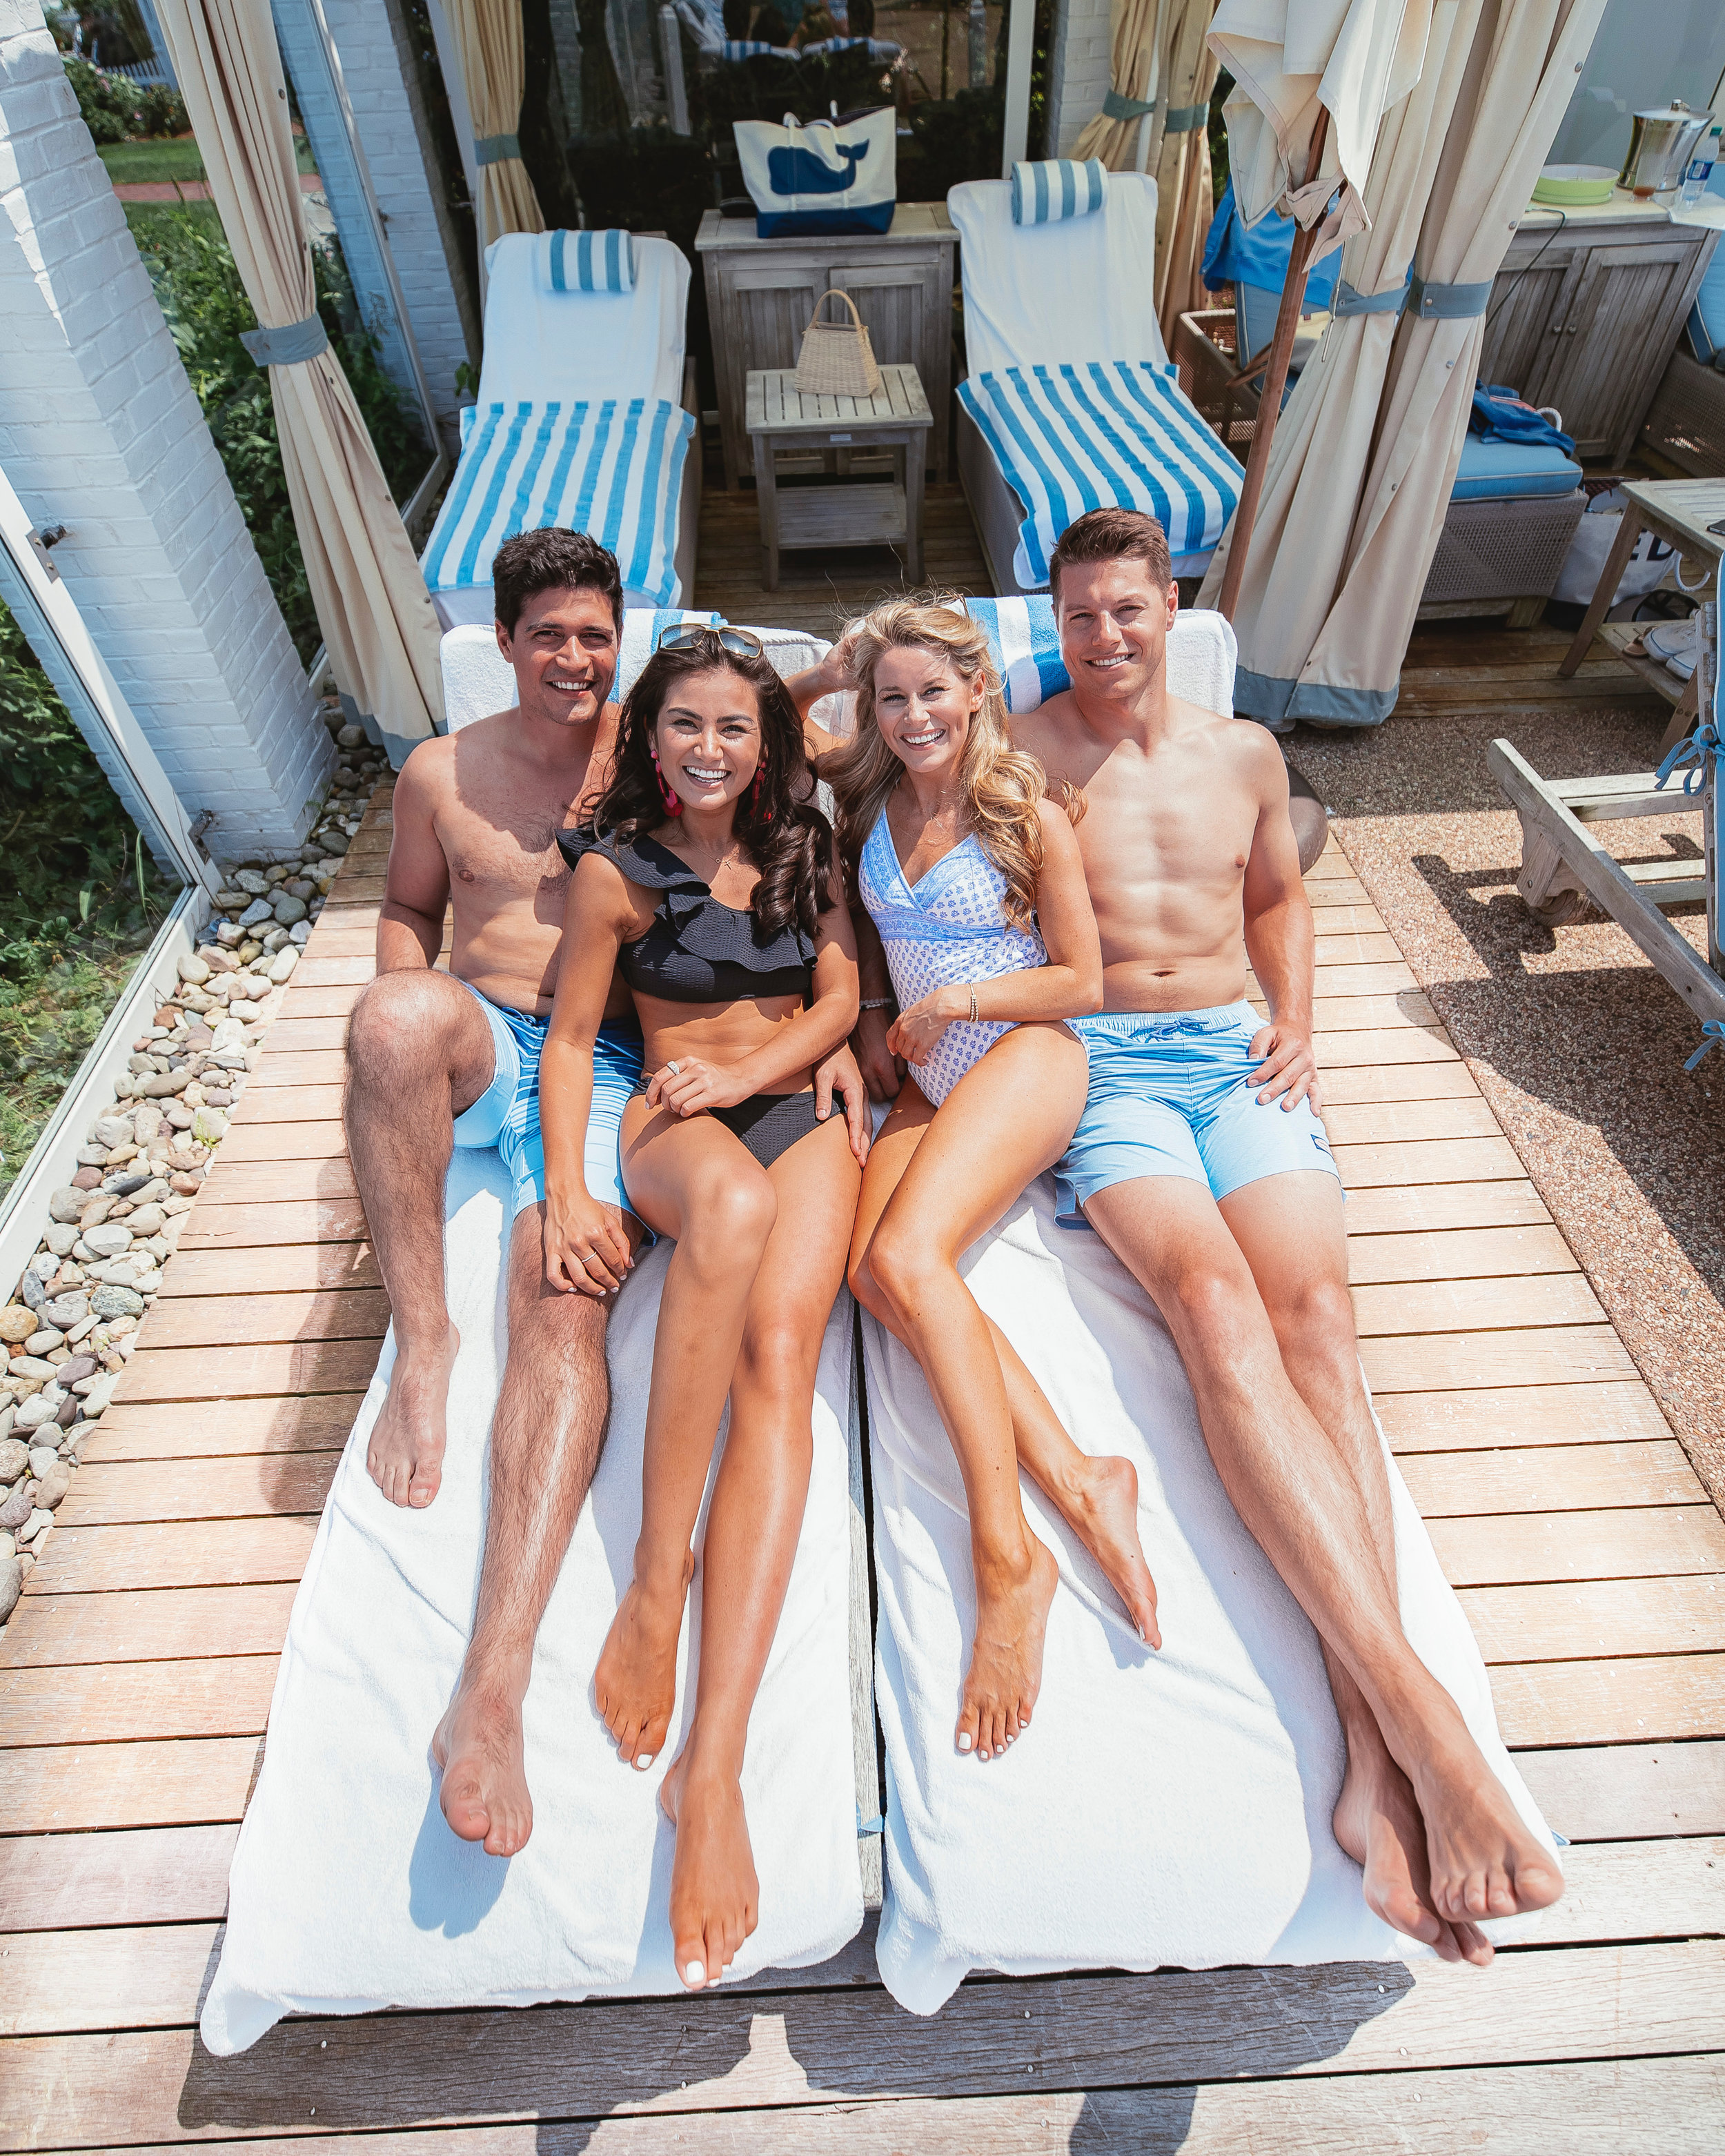 Caila Quinn The Bachelor Cape Cod Chatham Bars Inn Couples Weekend With Nick Burrello Olivia Rink and Vineyard Vines Travel Guide Vacation in the Northeast Beach Town